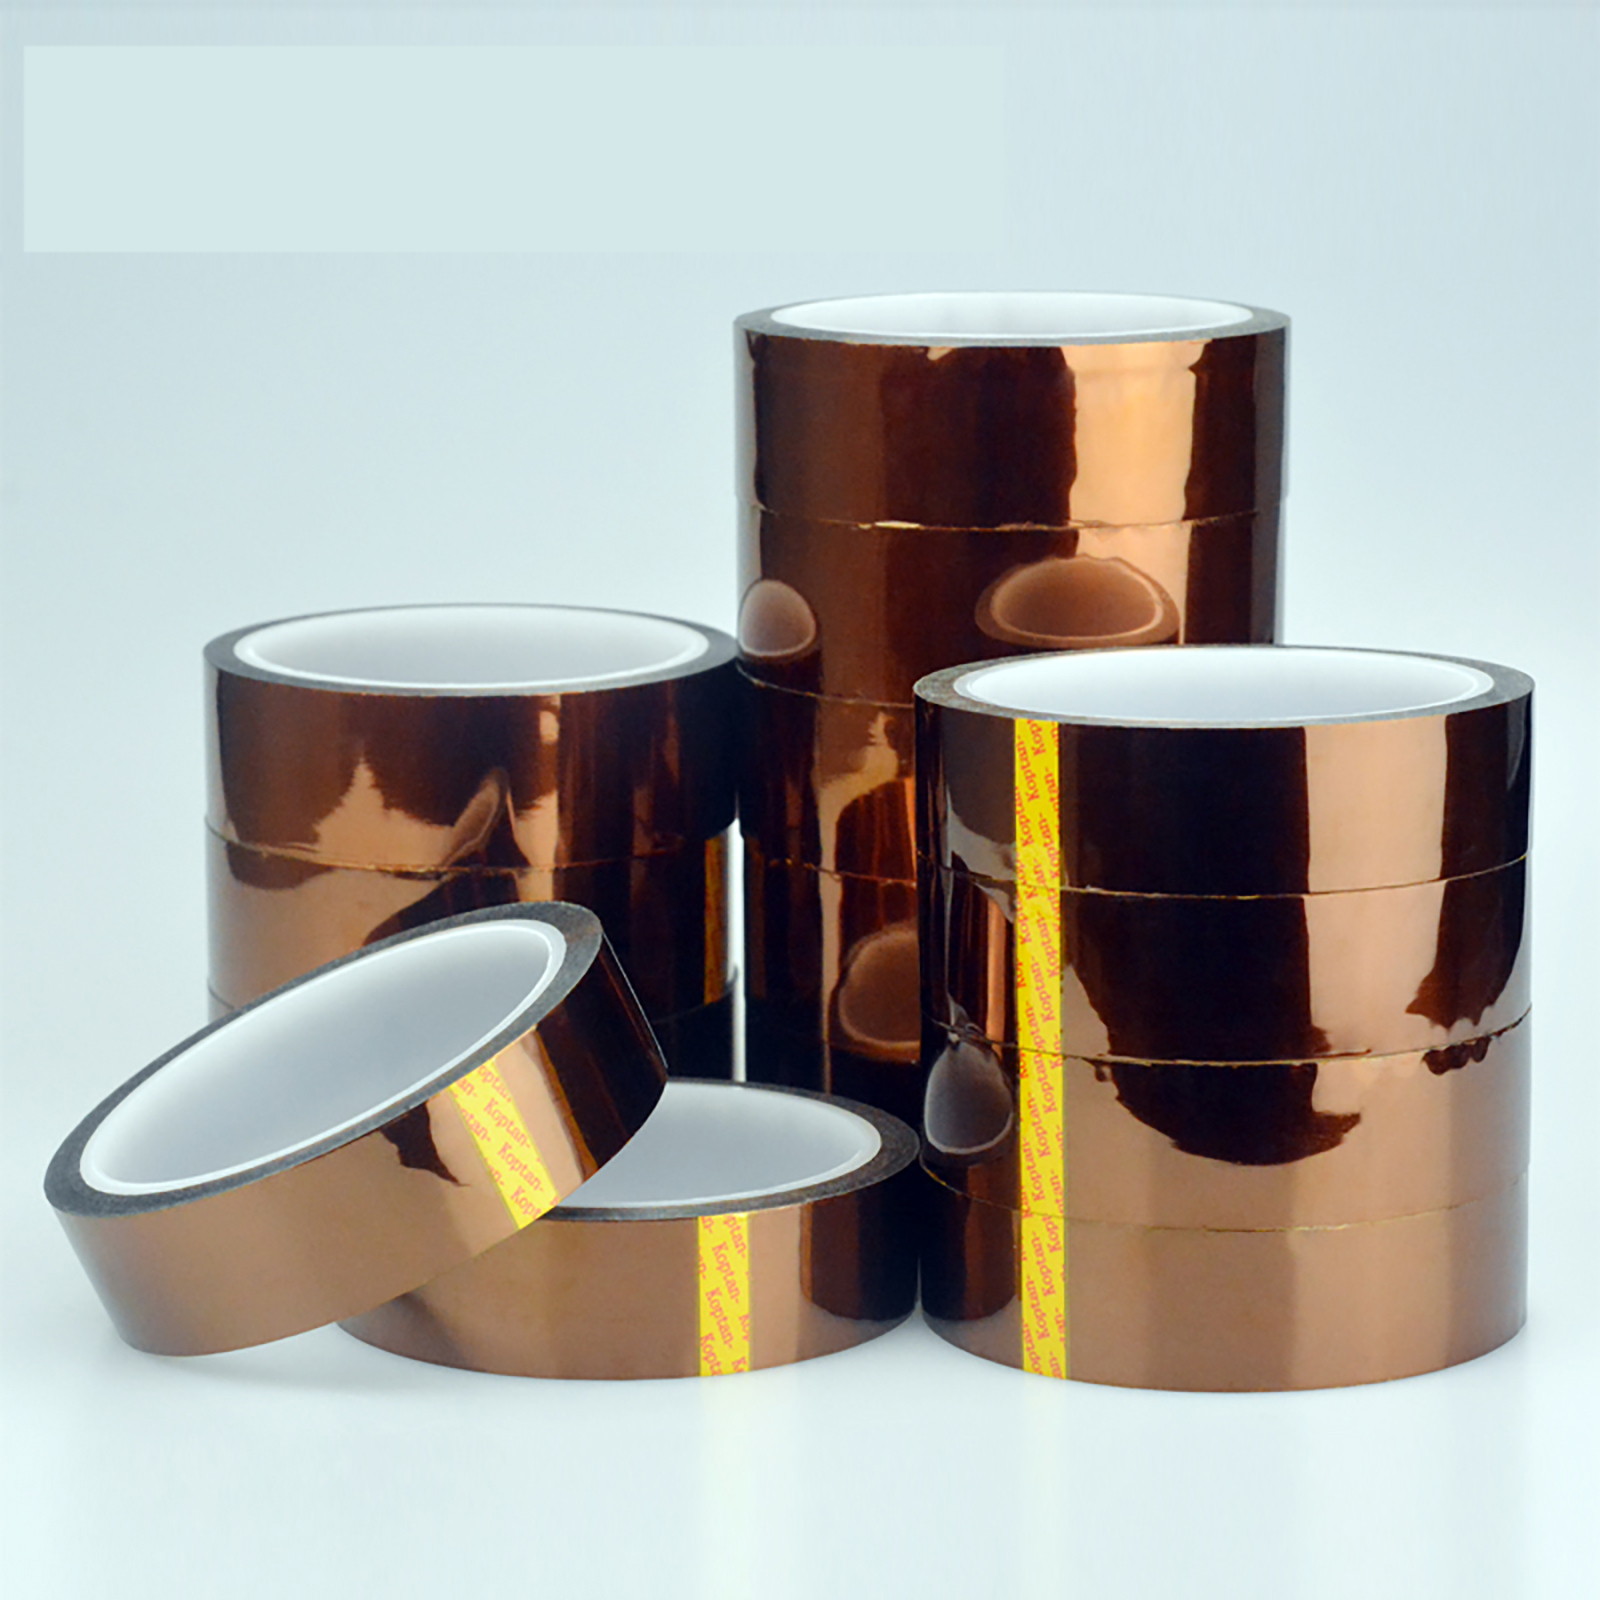 33M/Roll Kapton Tape Adhesive High Temperature Heat Resistant Polyimide 0.055mm Thickness 300℃